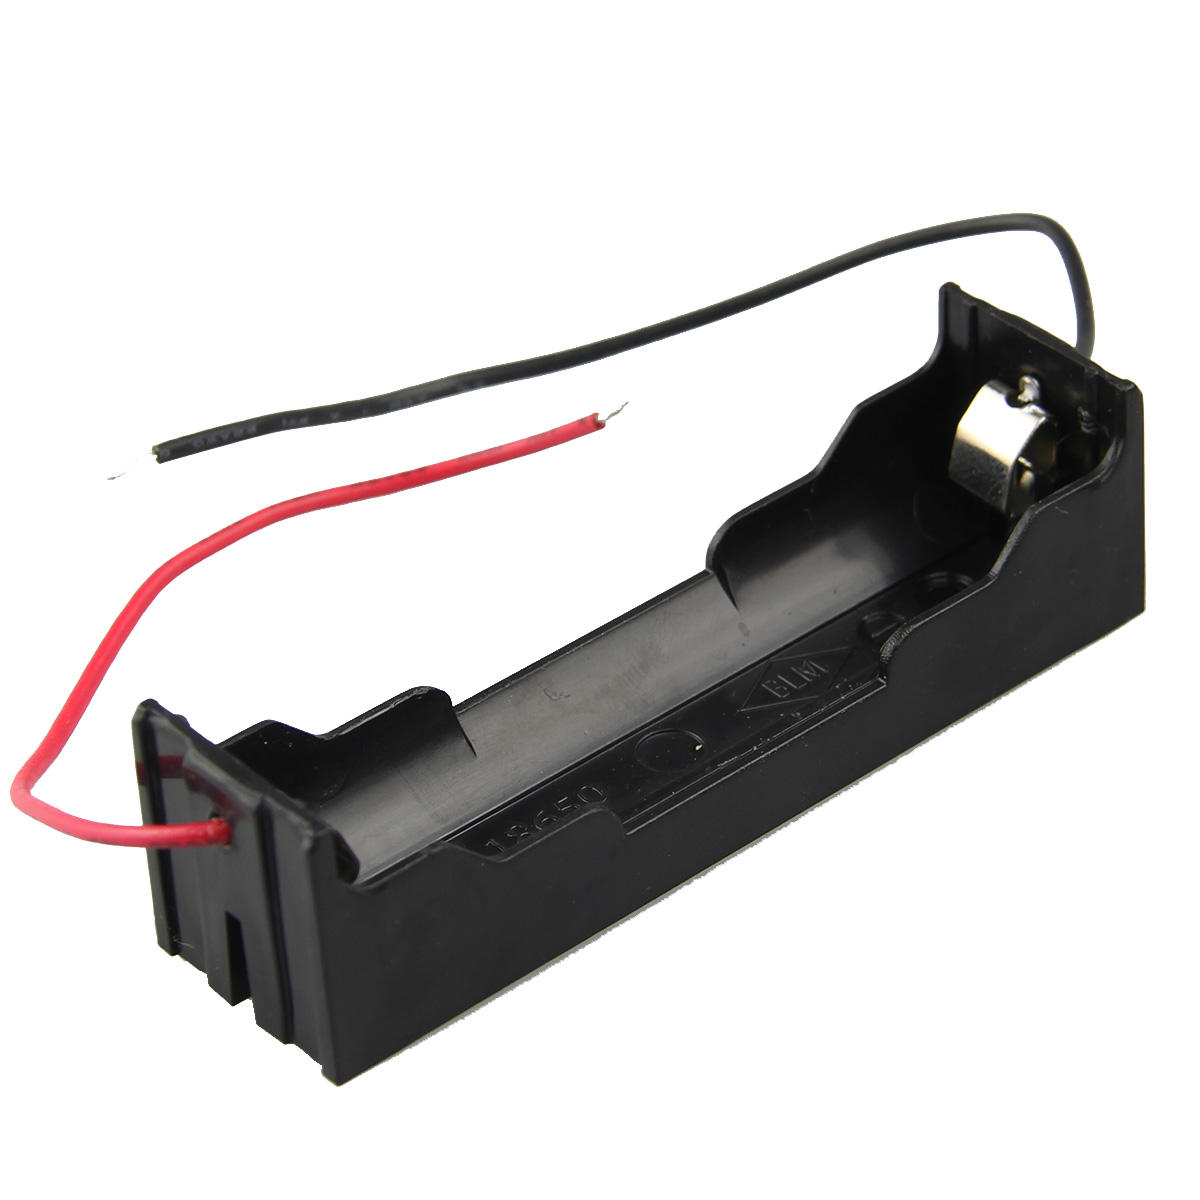 DIY 1 Slot 18650 Battery Holder With 2 Leads